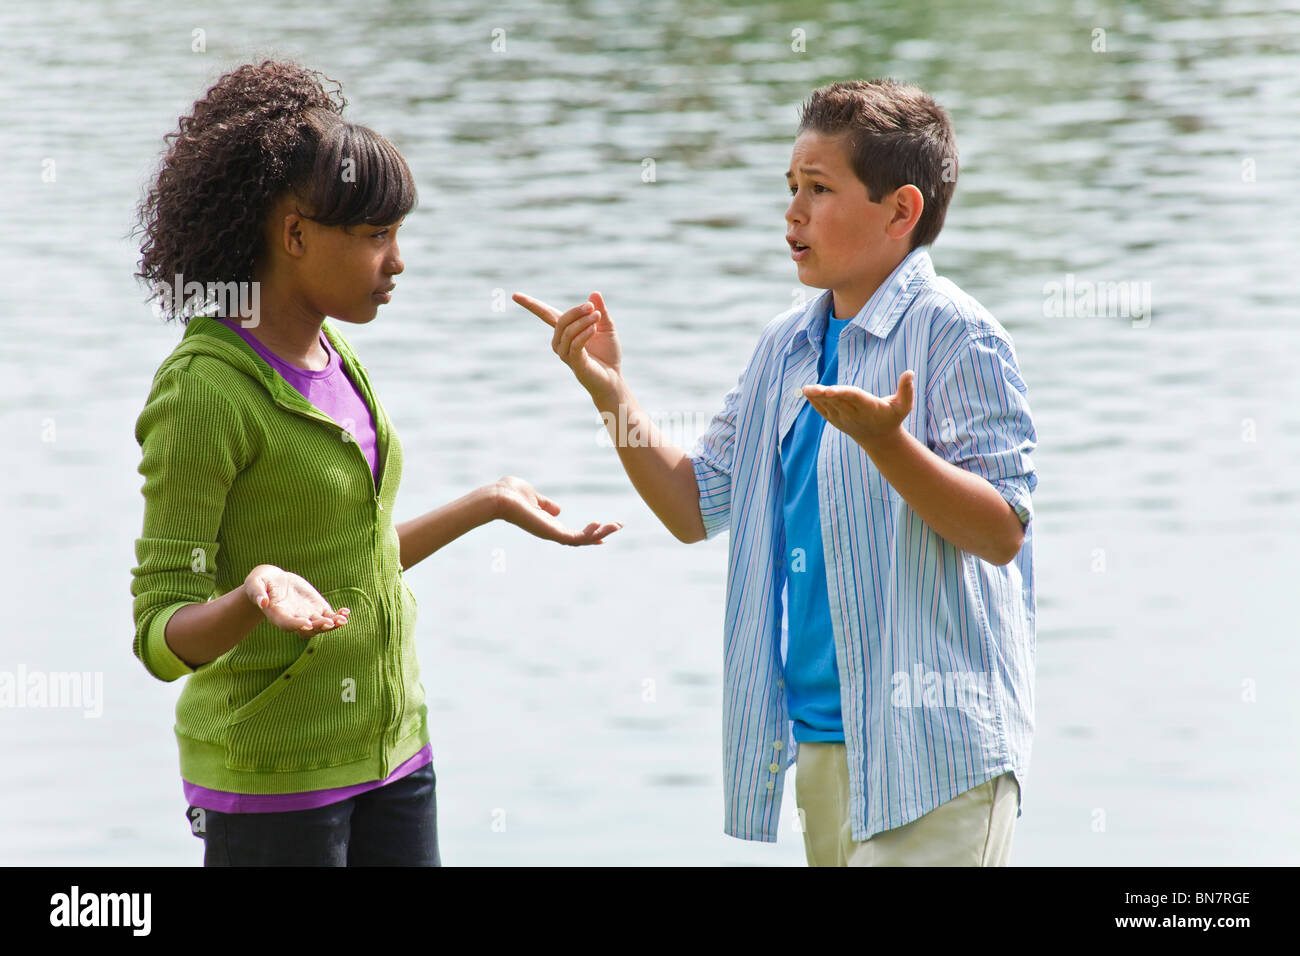 Ethnically diverse teen teenage kids hanging out talking with enthusiasm and hand gestures. MR ©Myrleen Pearson - Stock Image